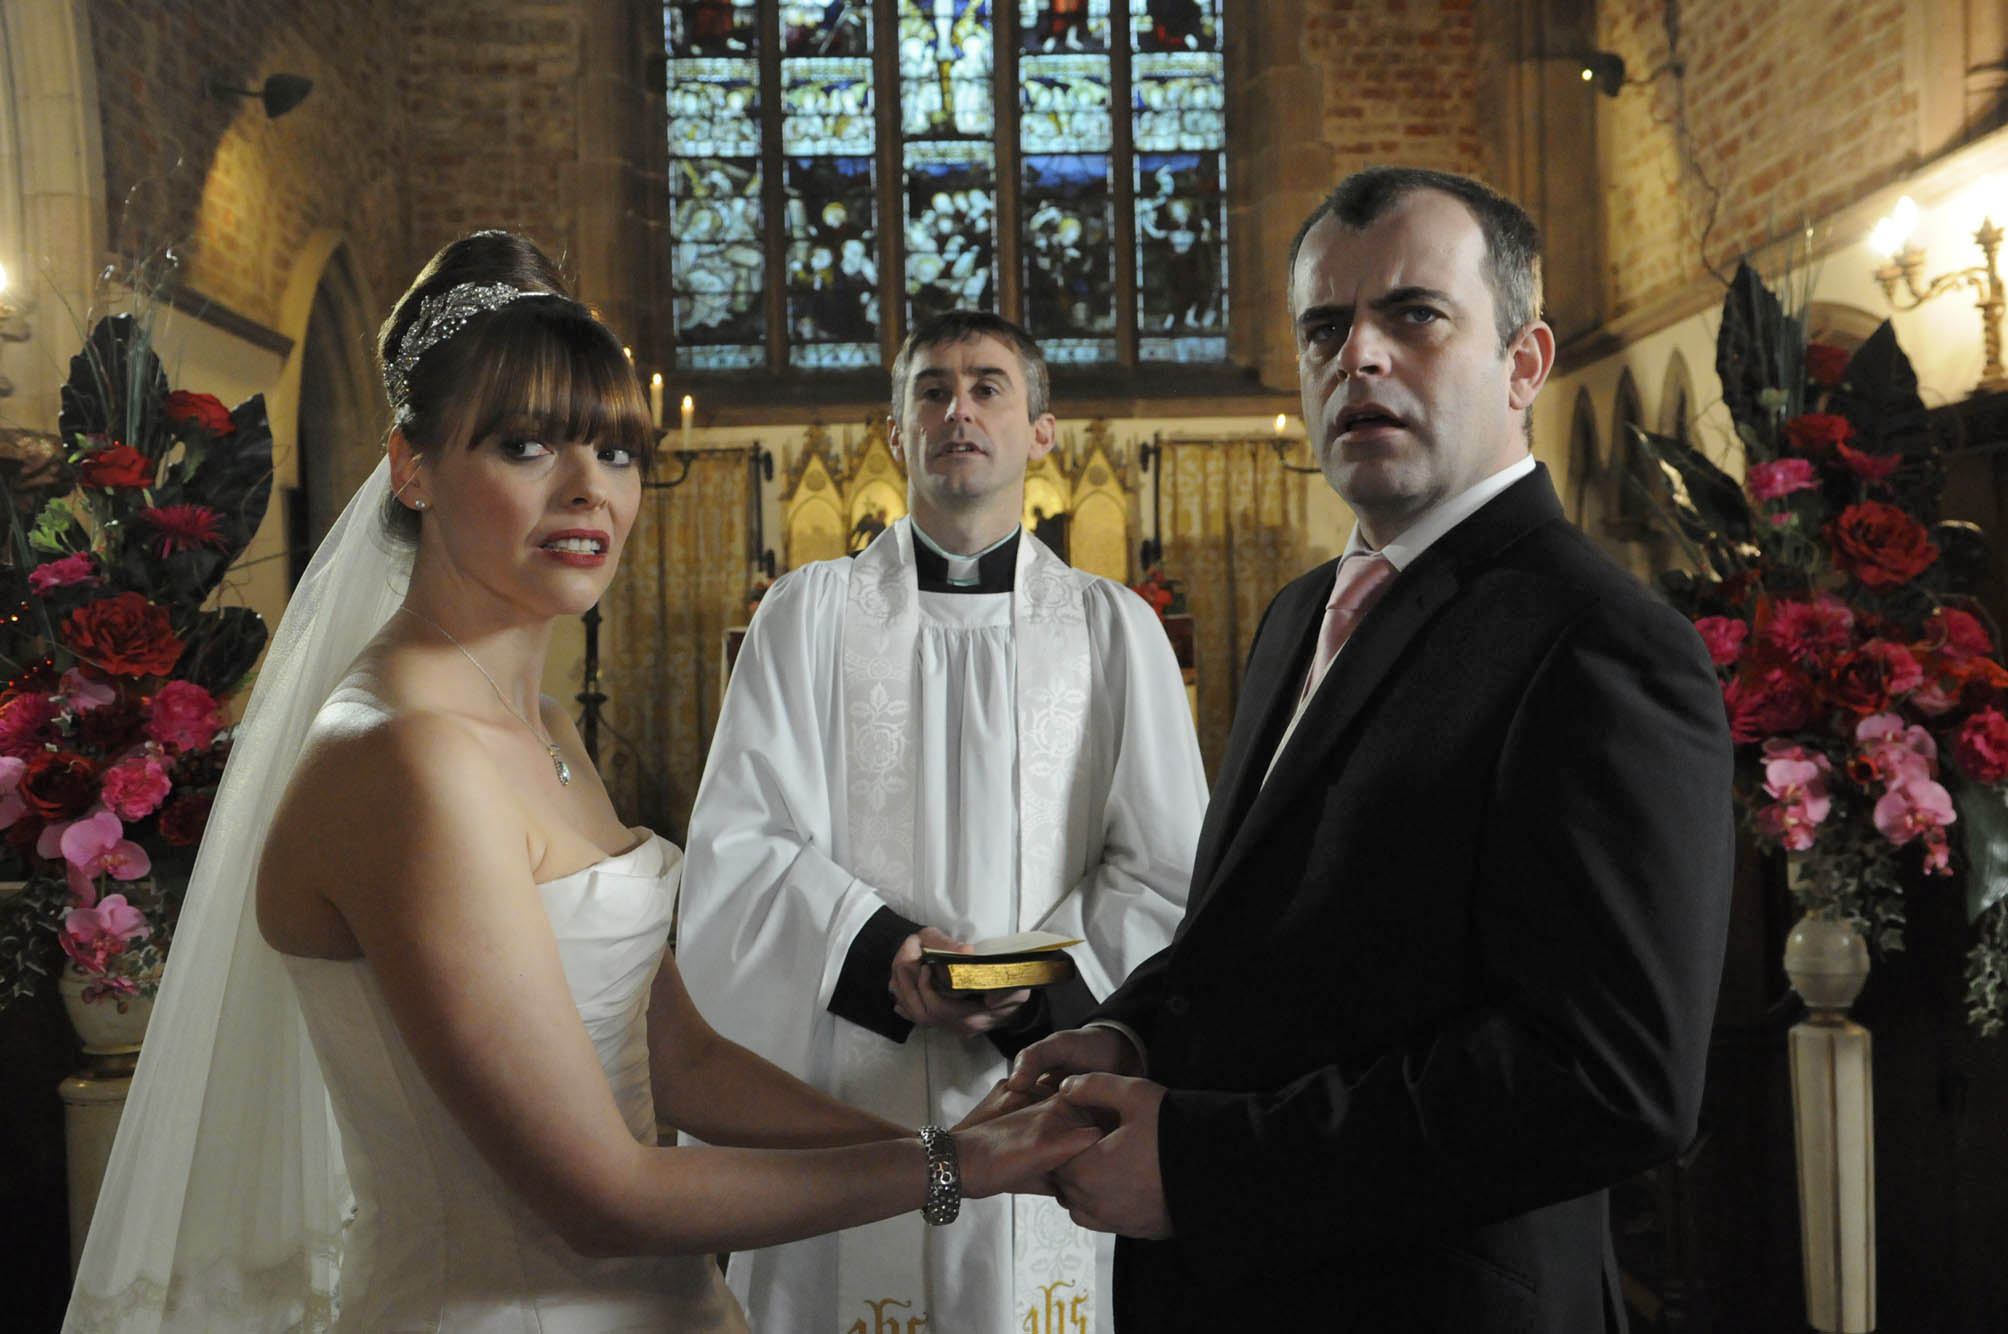 Mandatory Credit: Photo by ITV/REX/Shutterstock (3529622bv) Coronation Street - Ep 7785 Monday 23 January 2012 at 7.30pm At the church both Steve McDonald [SIMON GREGSON] and Tracy Barlow [KATE FORD] are shocked to see Becky McDonald [KATHERINE KELLY] and Kylie there but are prevented from going over as the service begins. The wedding underway Kylie wonders when Becky will drop her bombshell. As the vicar asks if anyone knows of any lawful impediment Becky stands up. Is this her moment for revenge? Coronation Street 2012